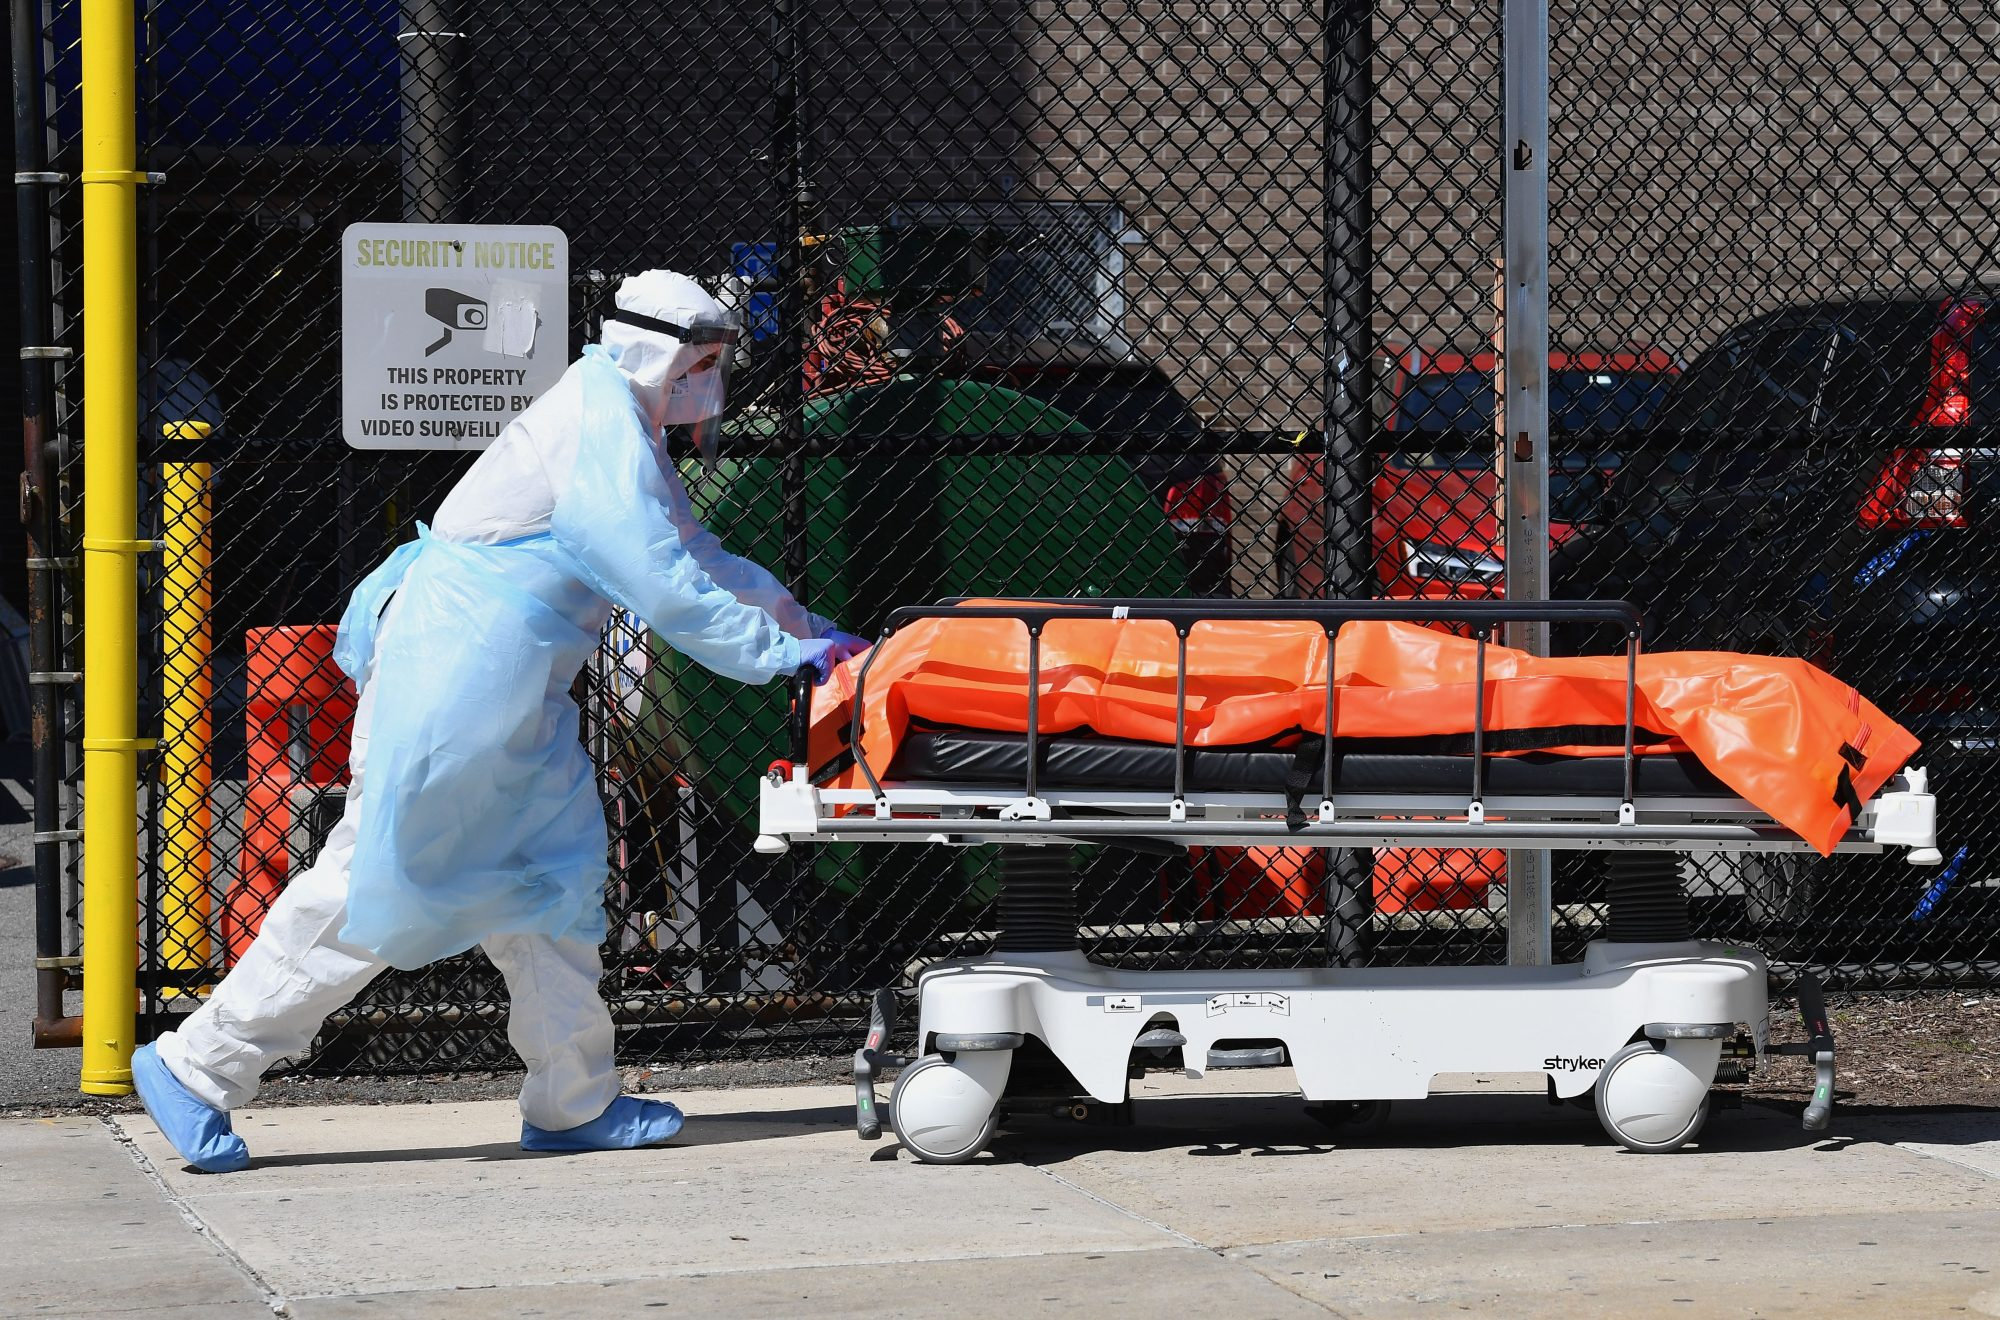 Medical staff move bodies from the Wyckoff Heights Medical Center to a refrigerated truck on April 2, 2020 in Brooklyn, New York. - The Federal Emergency Management Agency (FEMA) has asked the US Defense Department for 100,000 body bags as the toll mounts from the novel coronavirus, the Pentagon said on April 2. White House experts have said that US deaths from the disease -- currently at more than 5,100 -- are expected to climb to between 100,000 and 240,000, even with mitigation efforts in force. (Photo by Angela Weiss / AFP) (Photo by ANGELA WEISS/AFP via Getty Images)